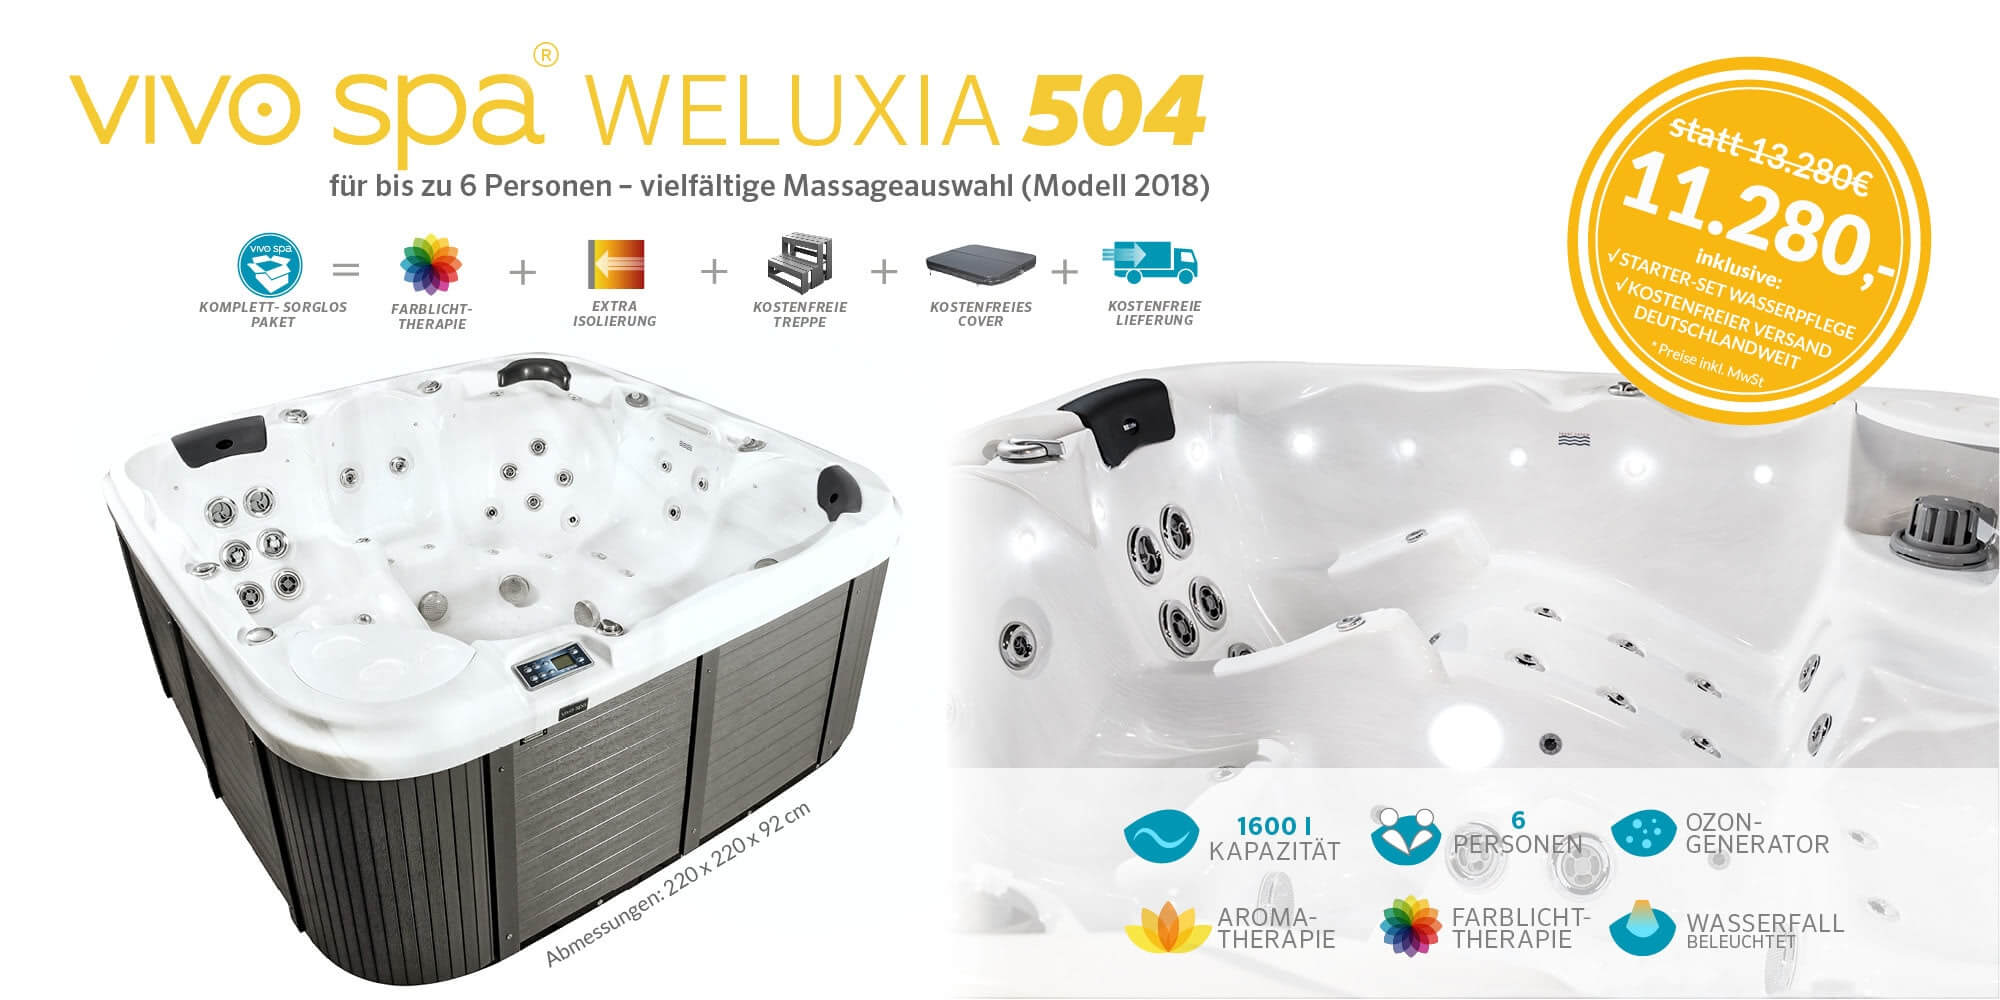 Whirlpool Center vivo spa WELUXIA 504